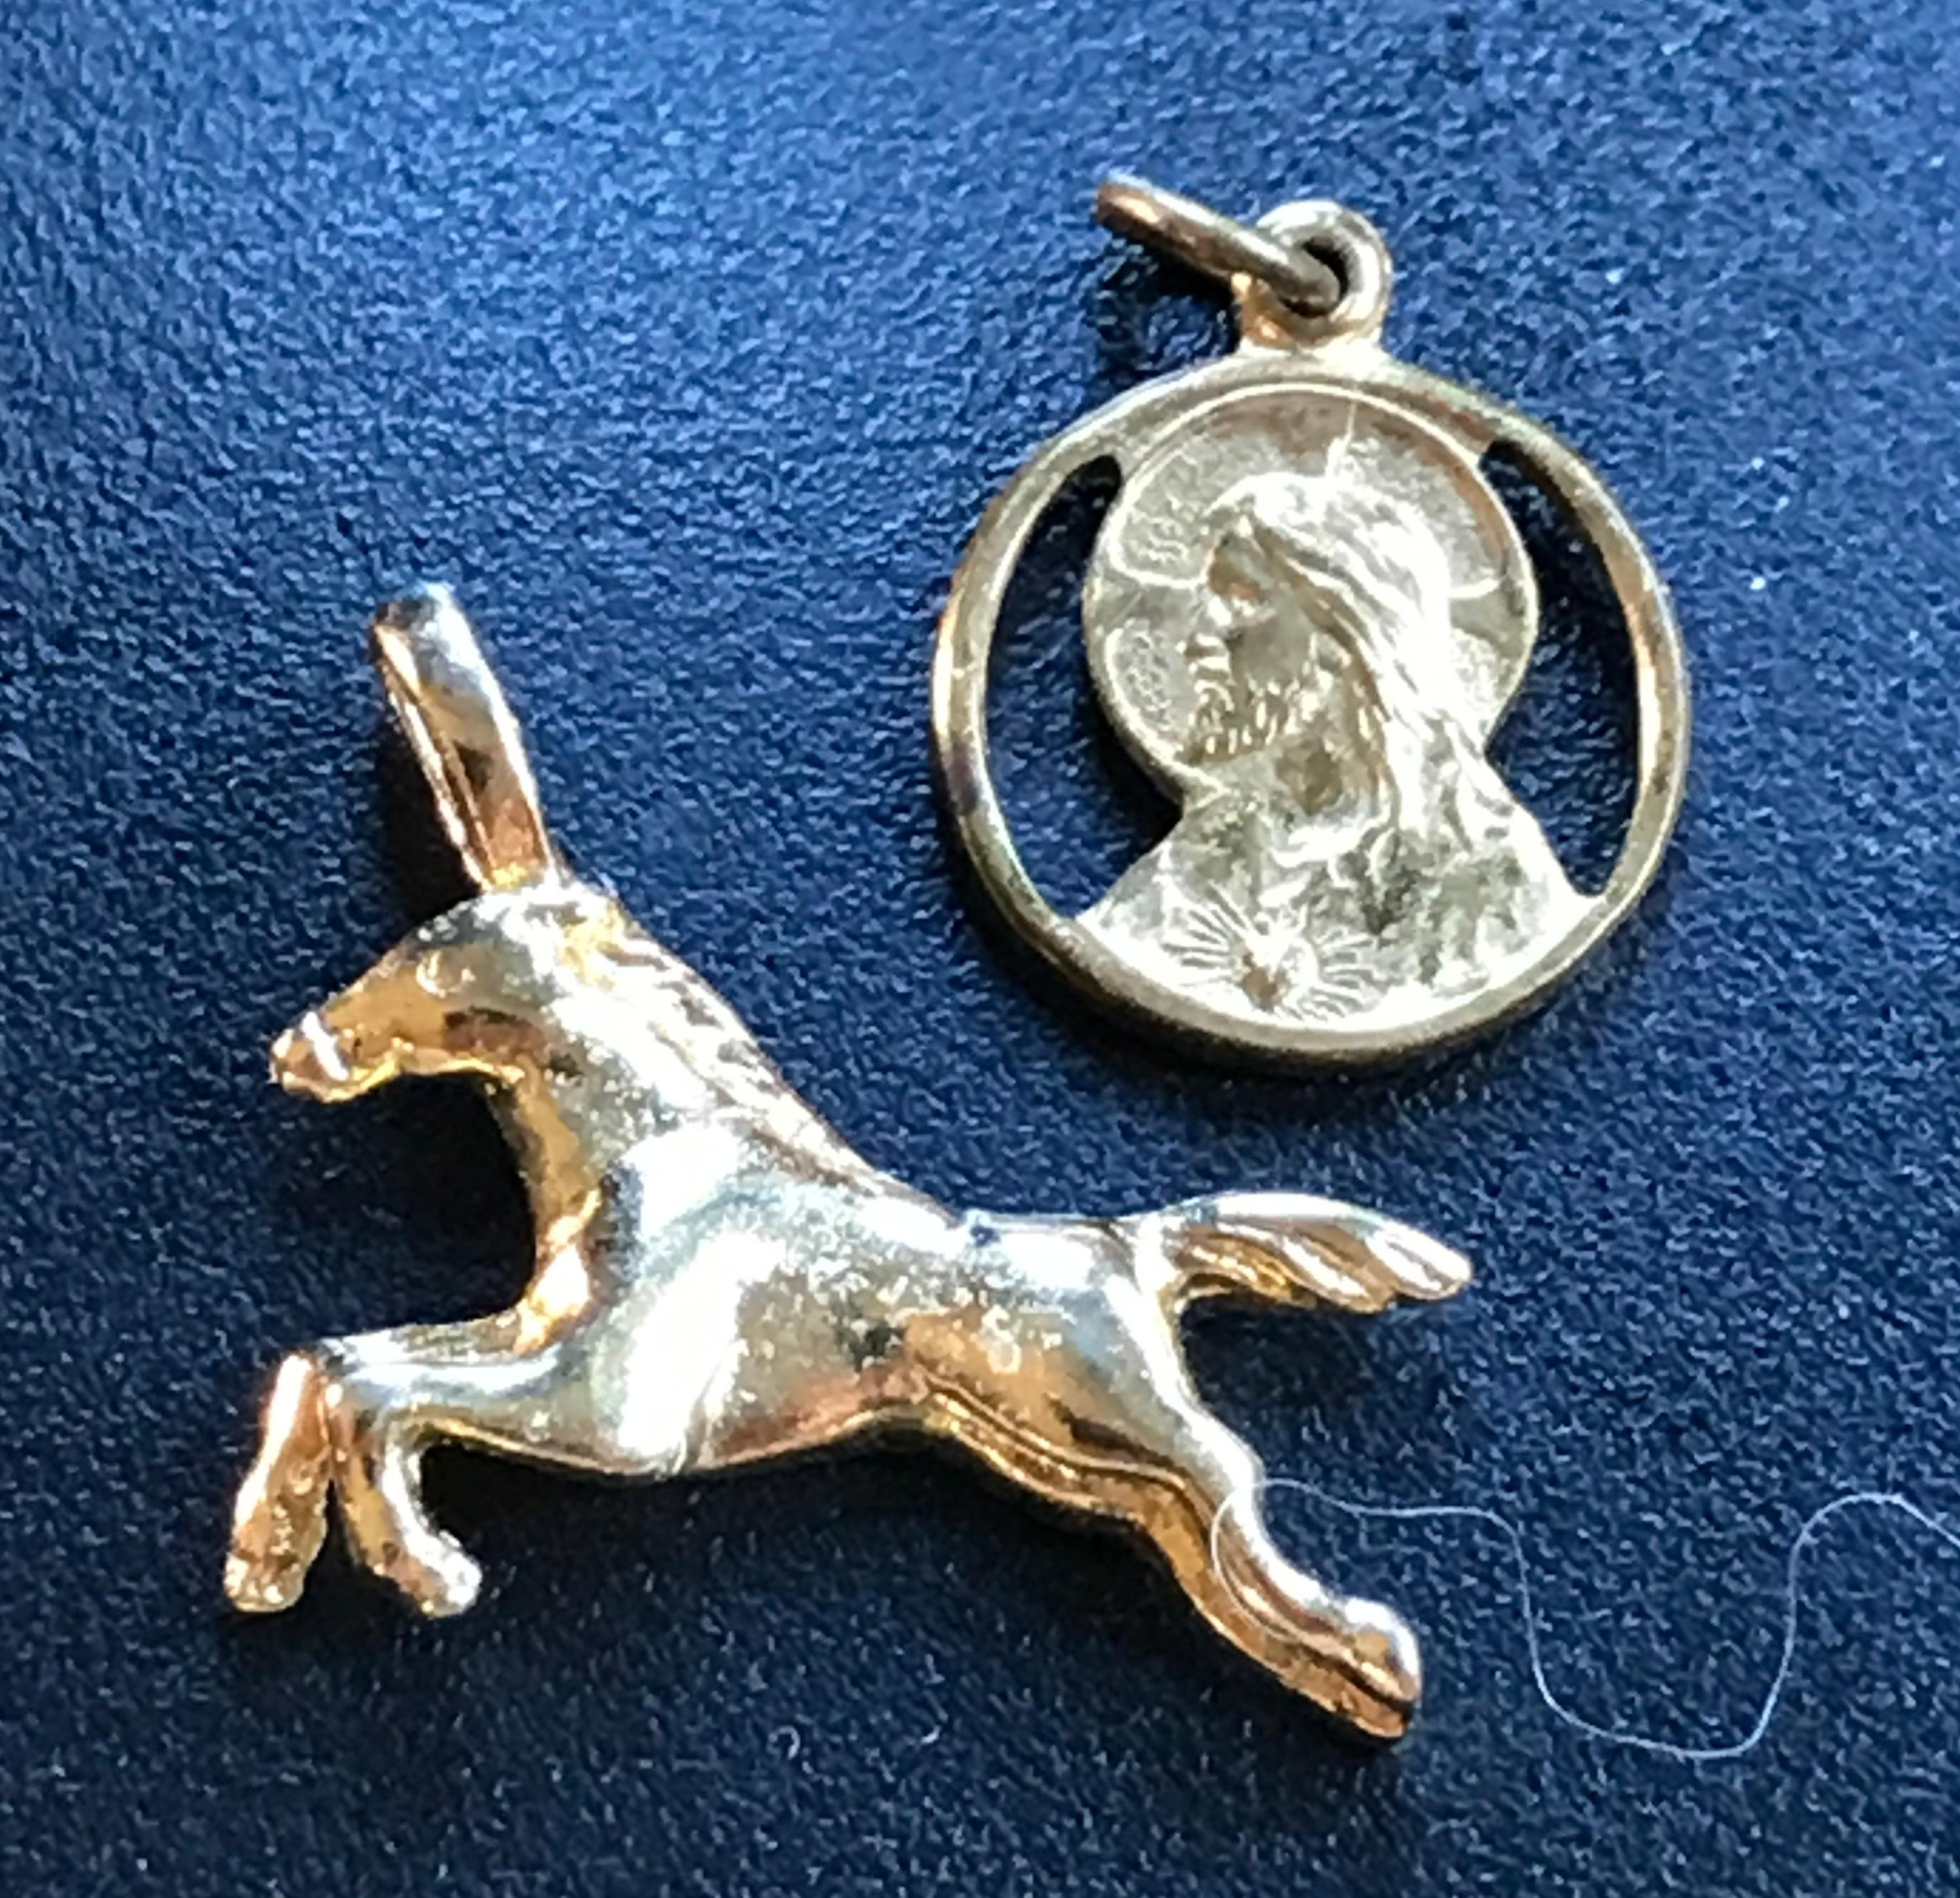 Two Gold Filled Pendants